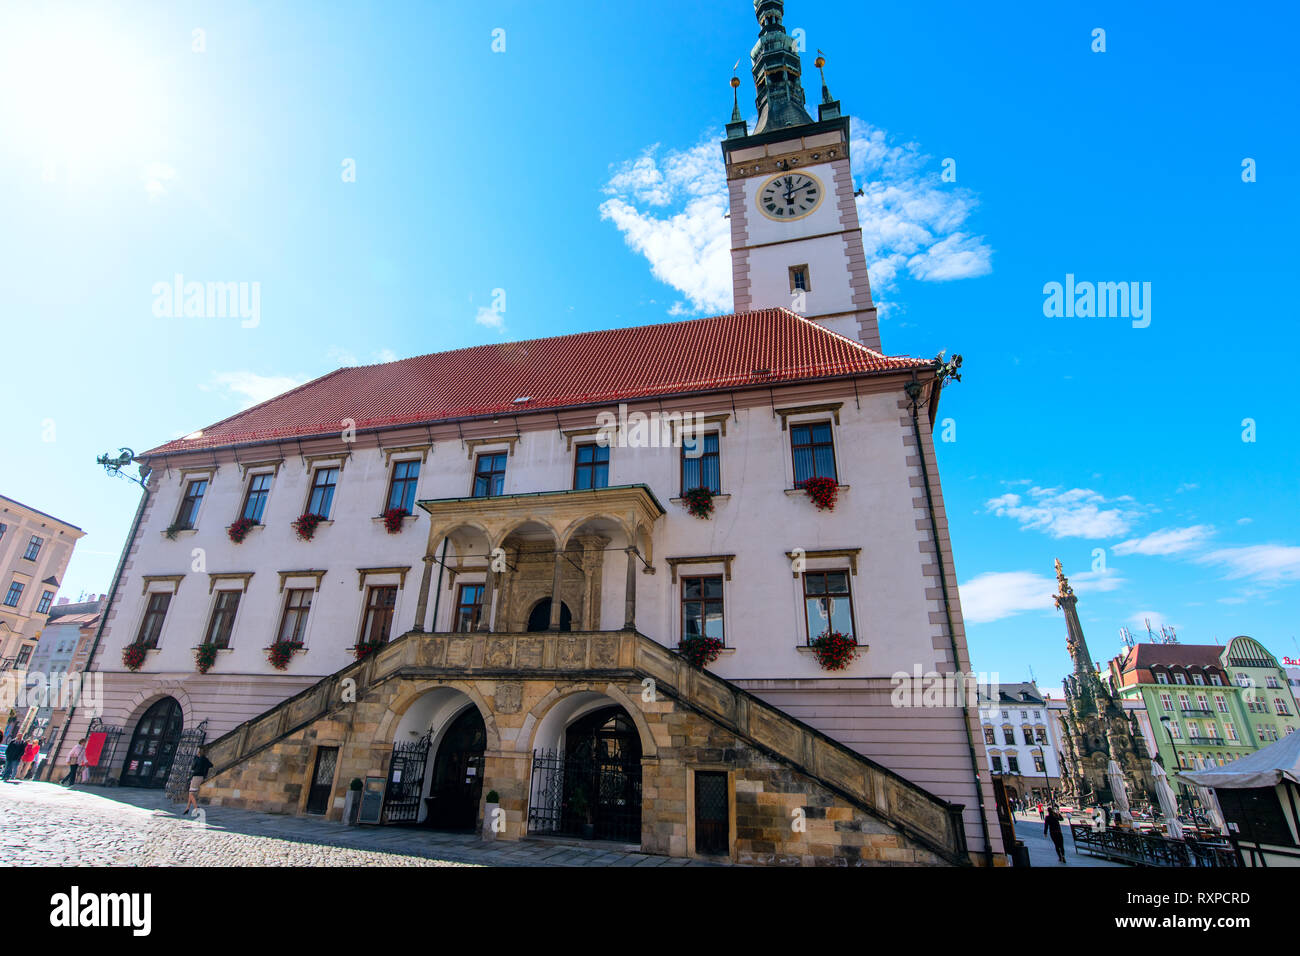 Town Hall and astronomical clock of Olomouc, Czech Republic - Stock Image